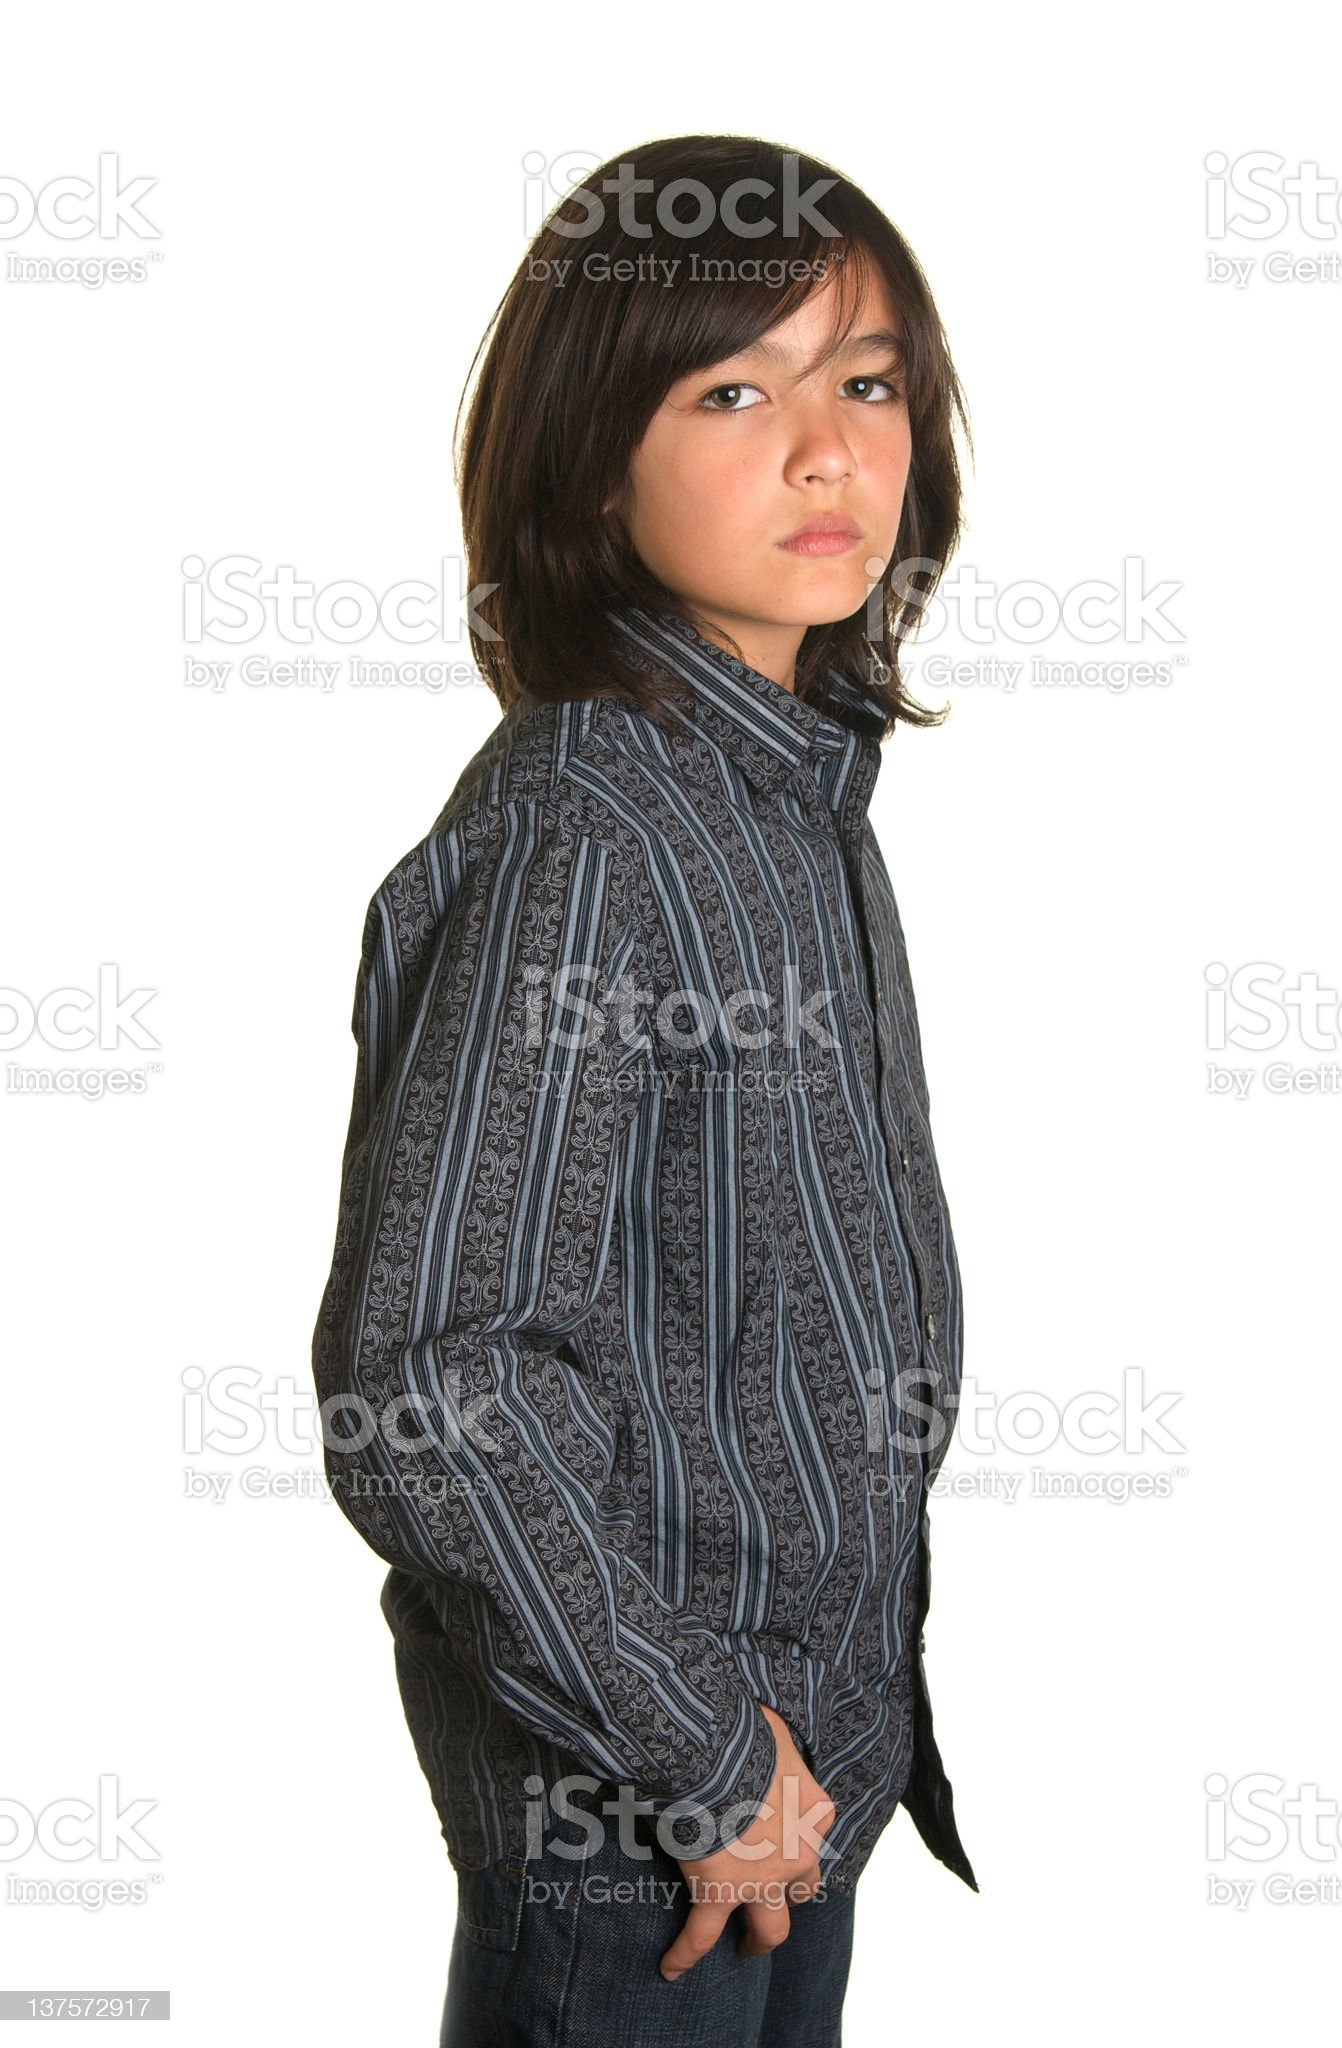 Handsome Boy Model with Long Hair Standing royalty-free stock photo